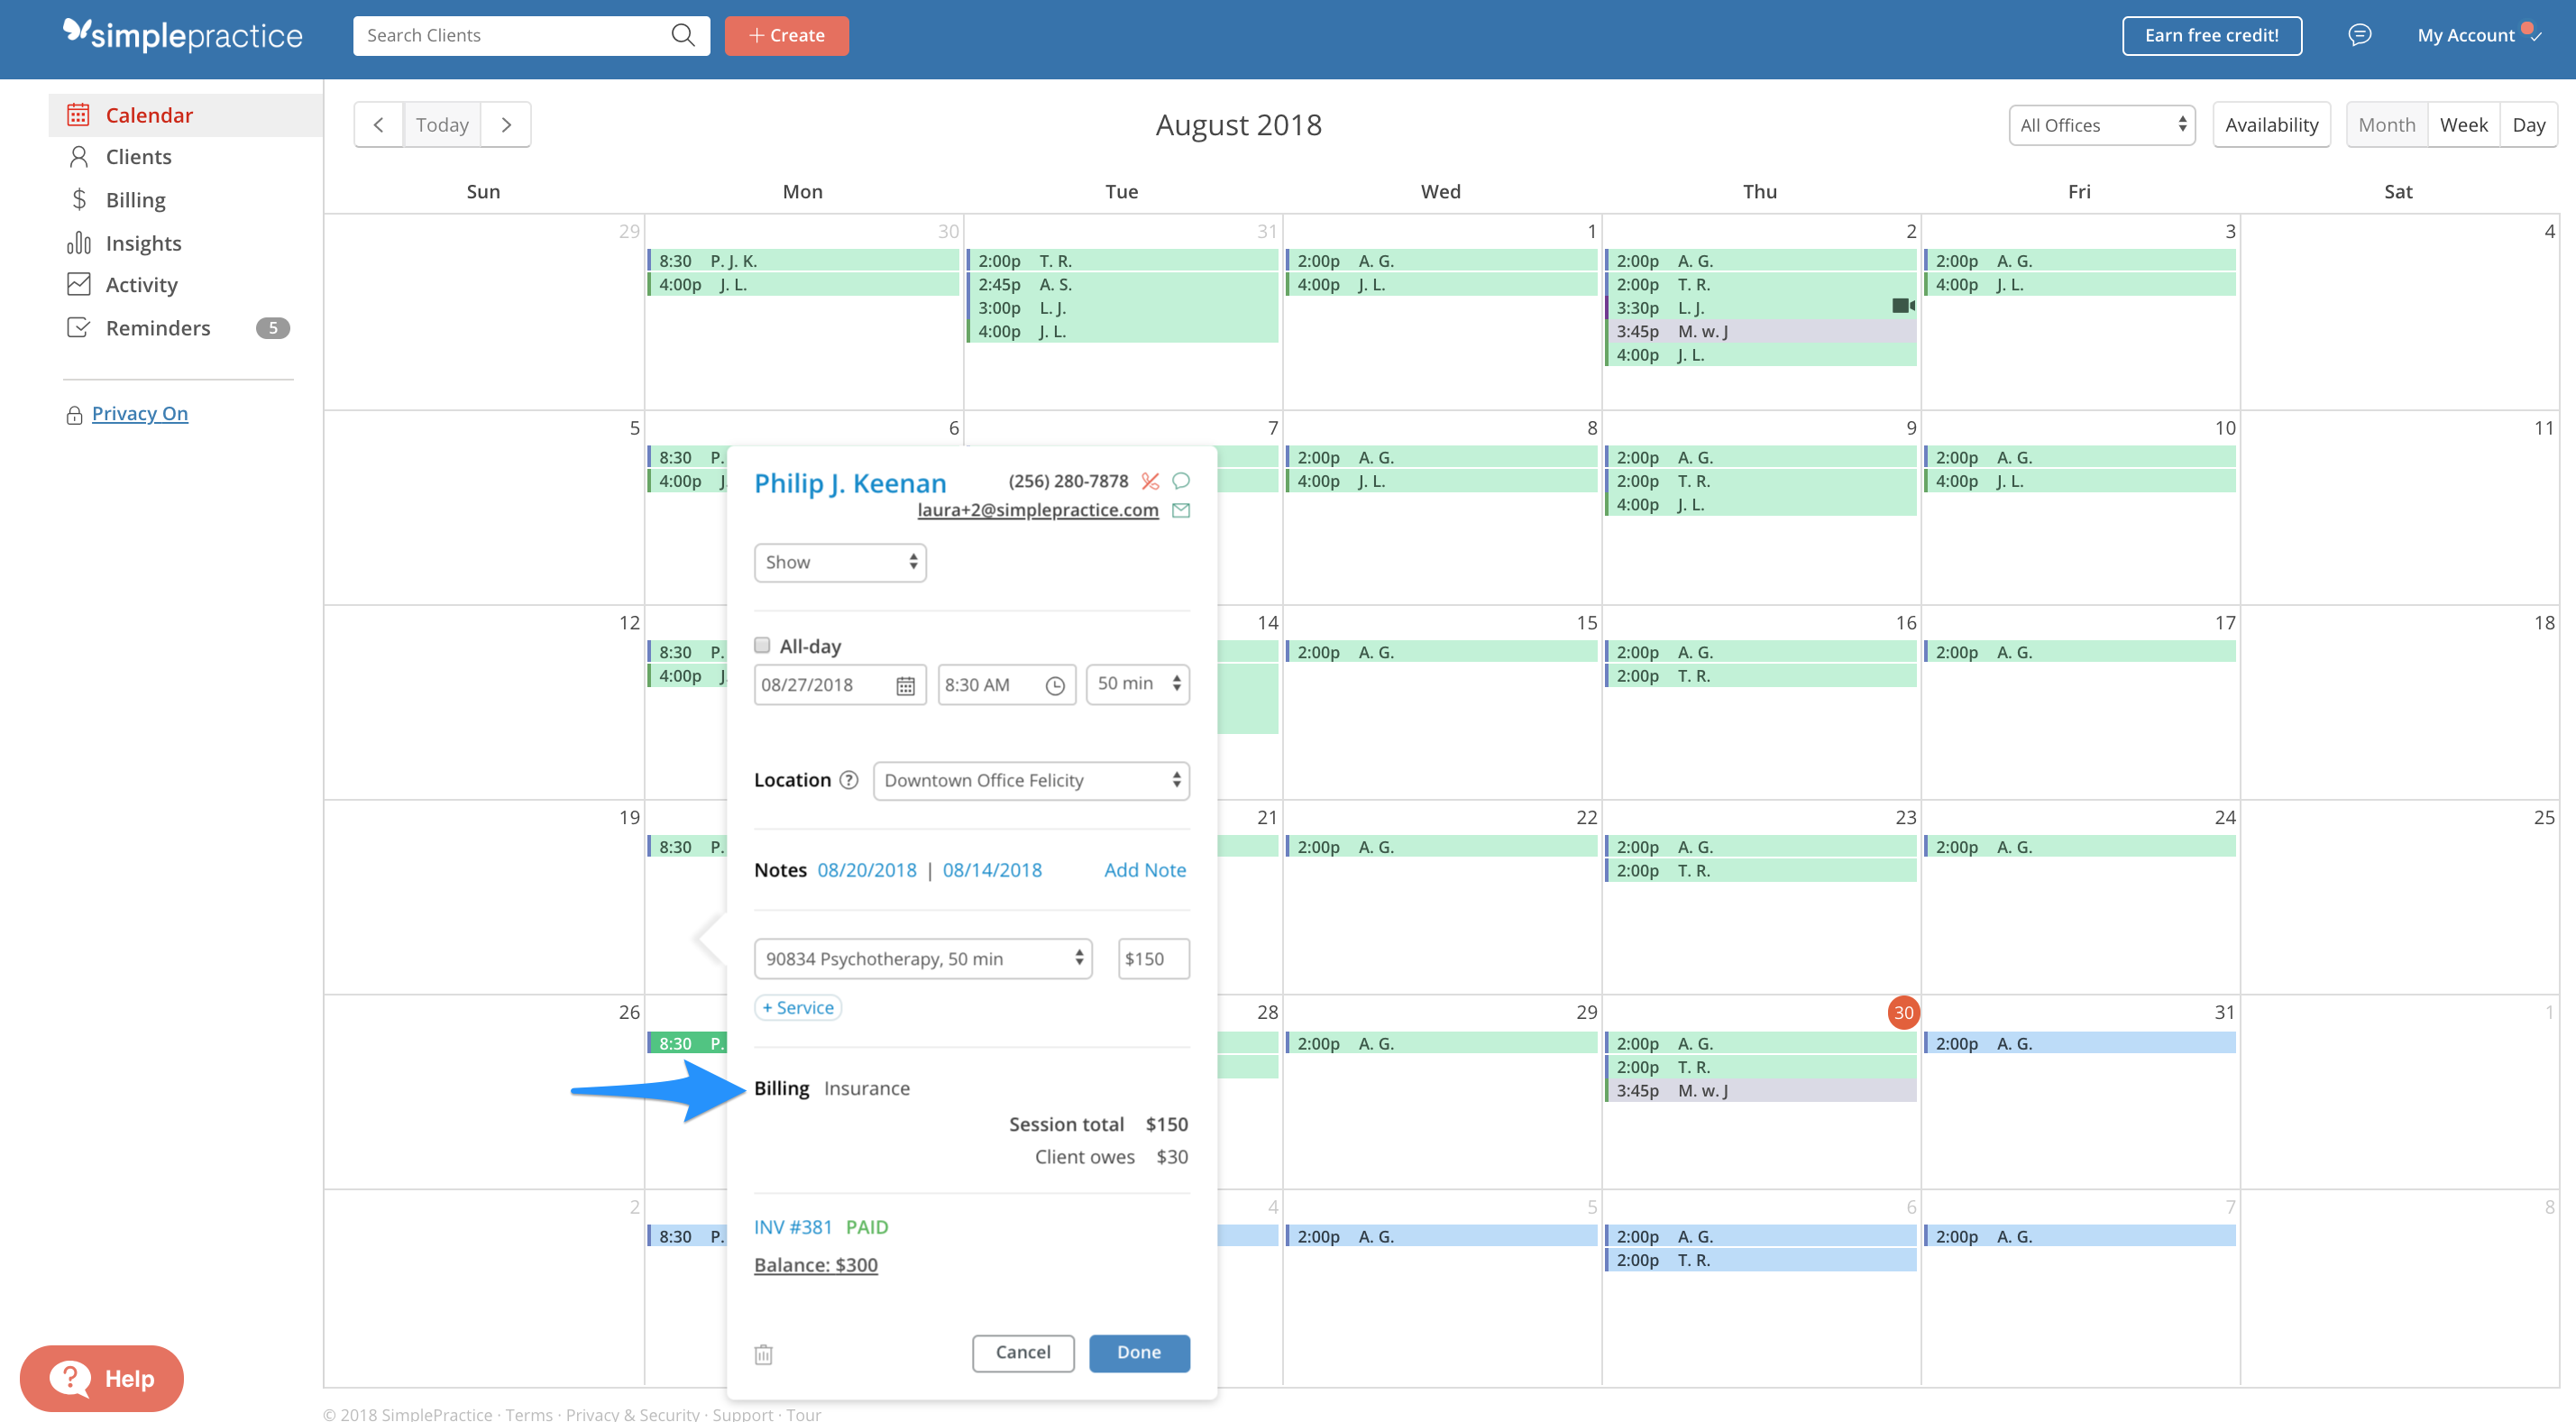 Viewing Billing Type through the client's appointment in the calendar in SimplePractice